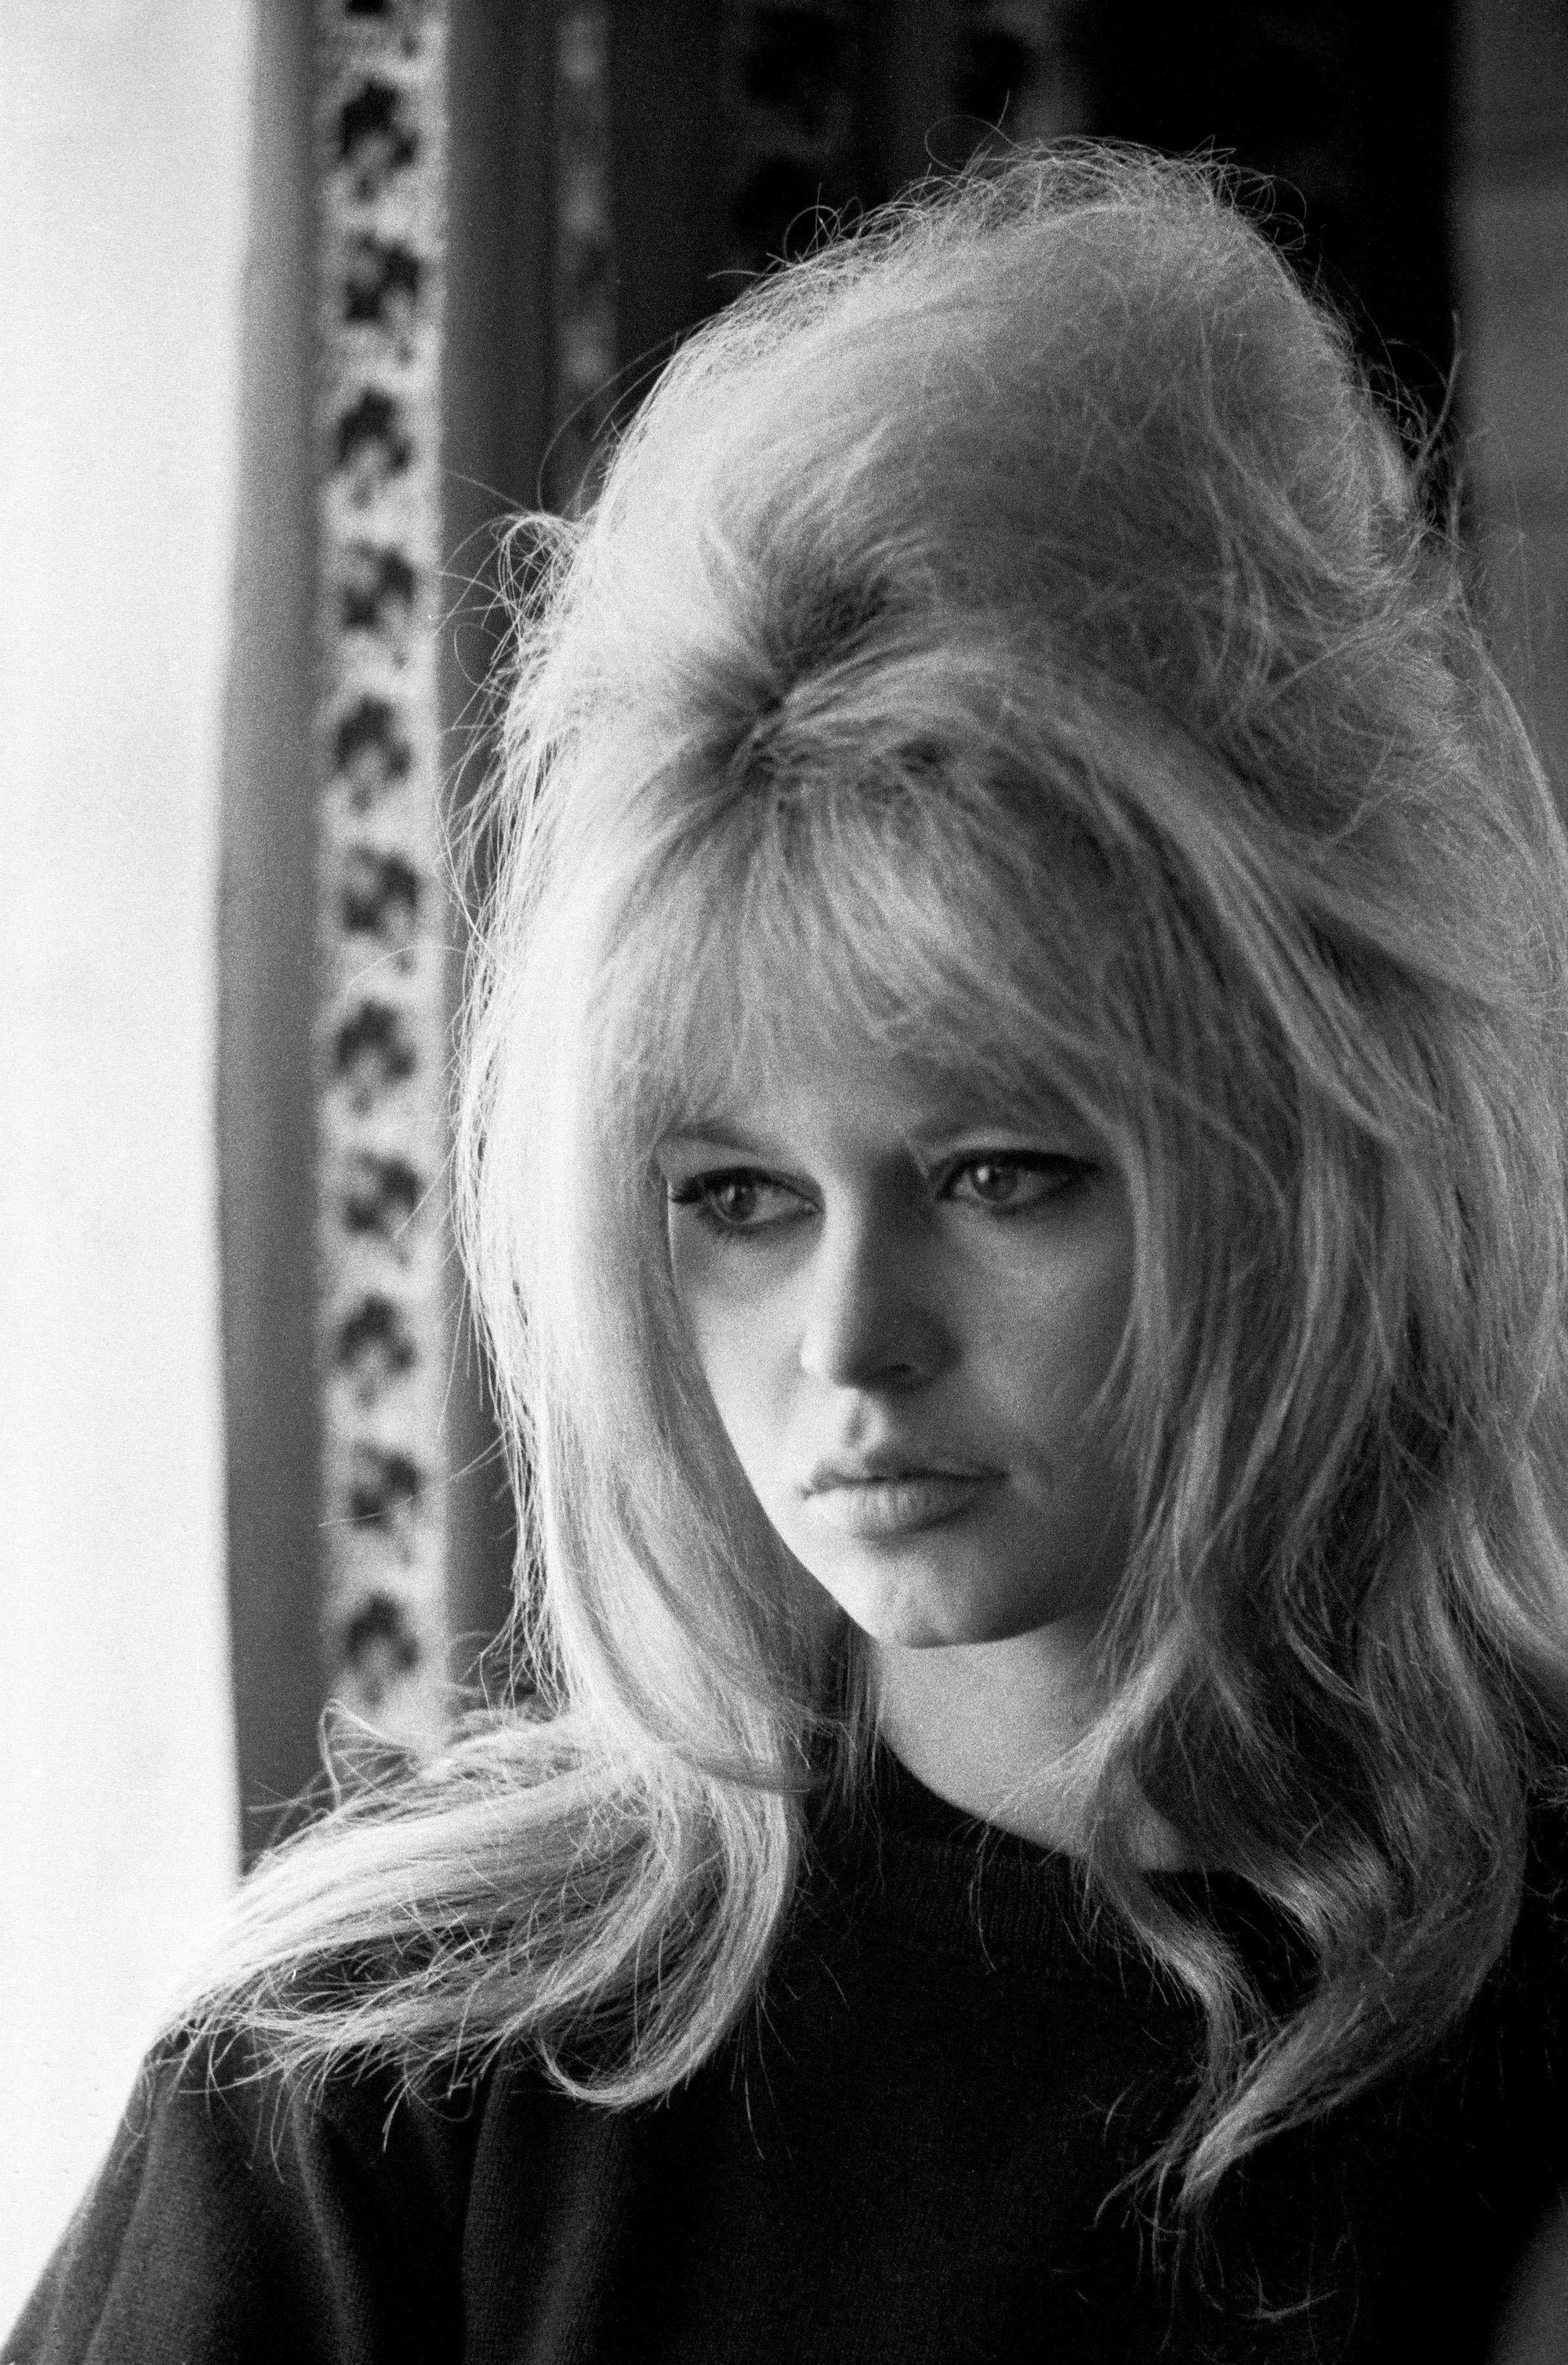 60s hairstyles: All the retro looks we\'re still loving today